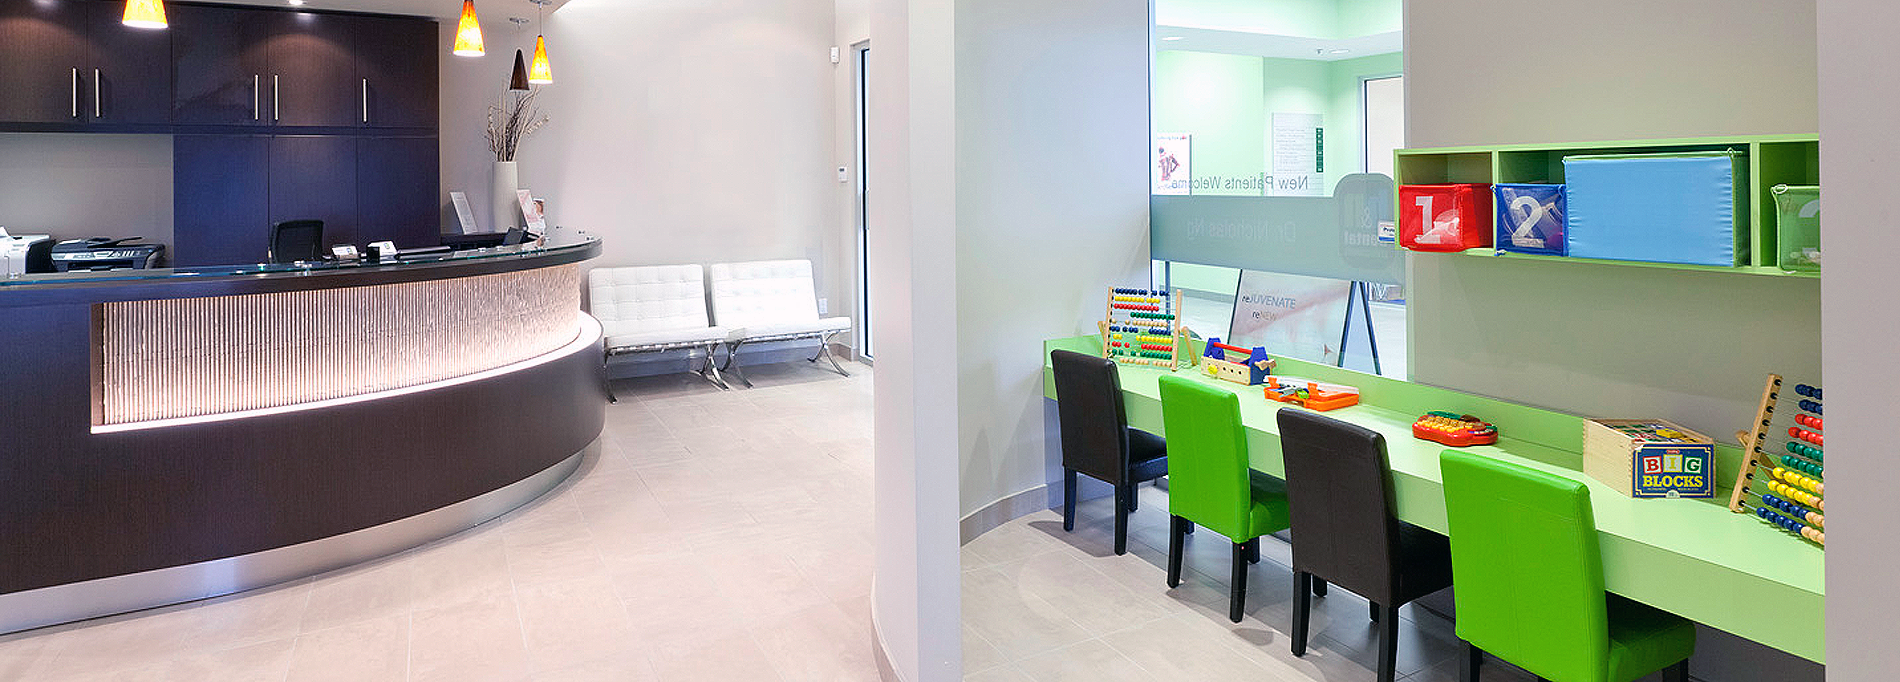 Mint Dental Clinic - Burlington Dentist Office - Kids Play Area